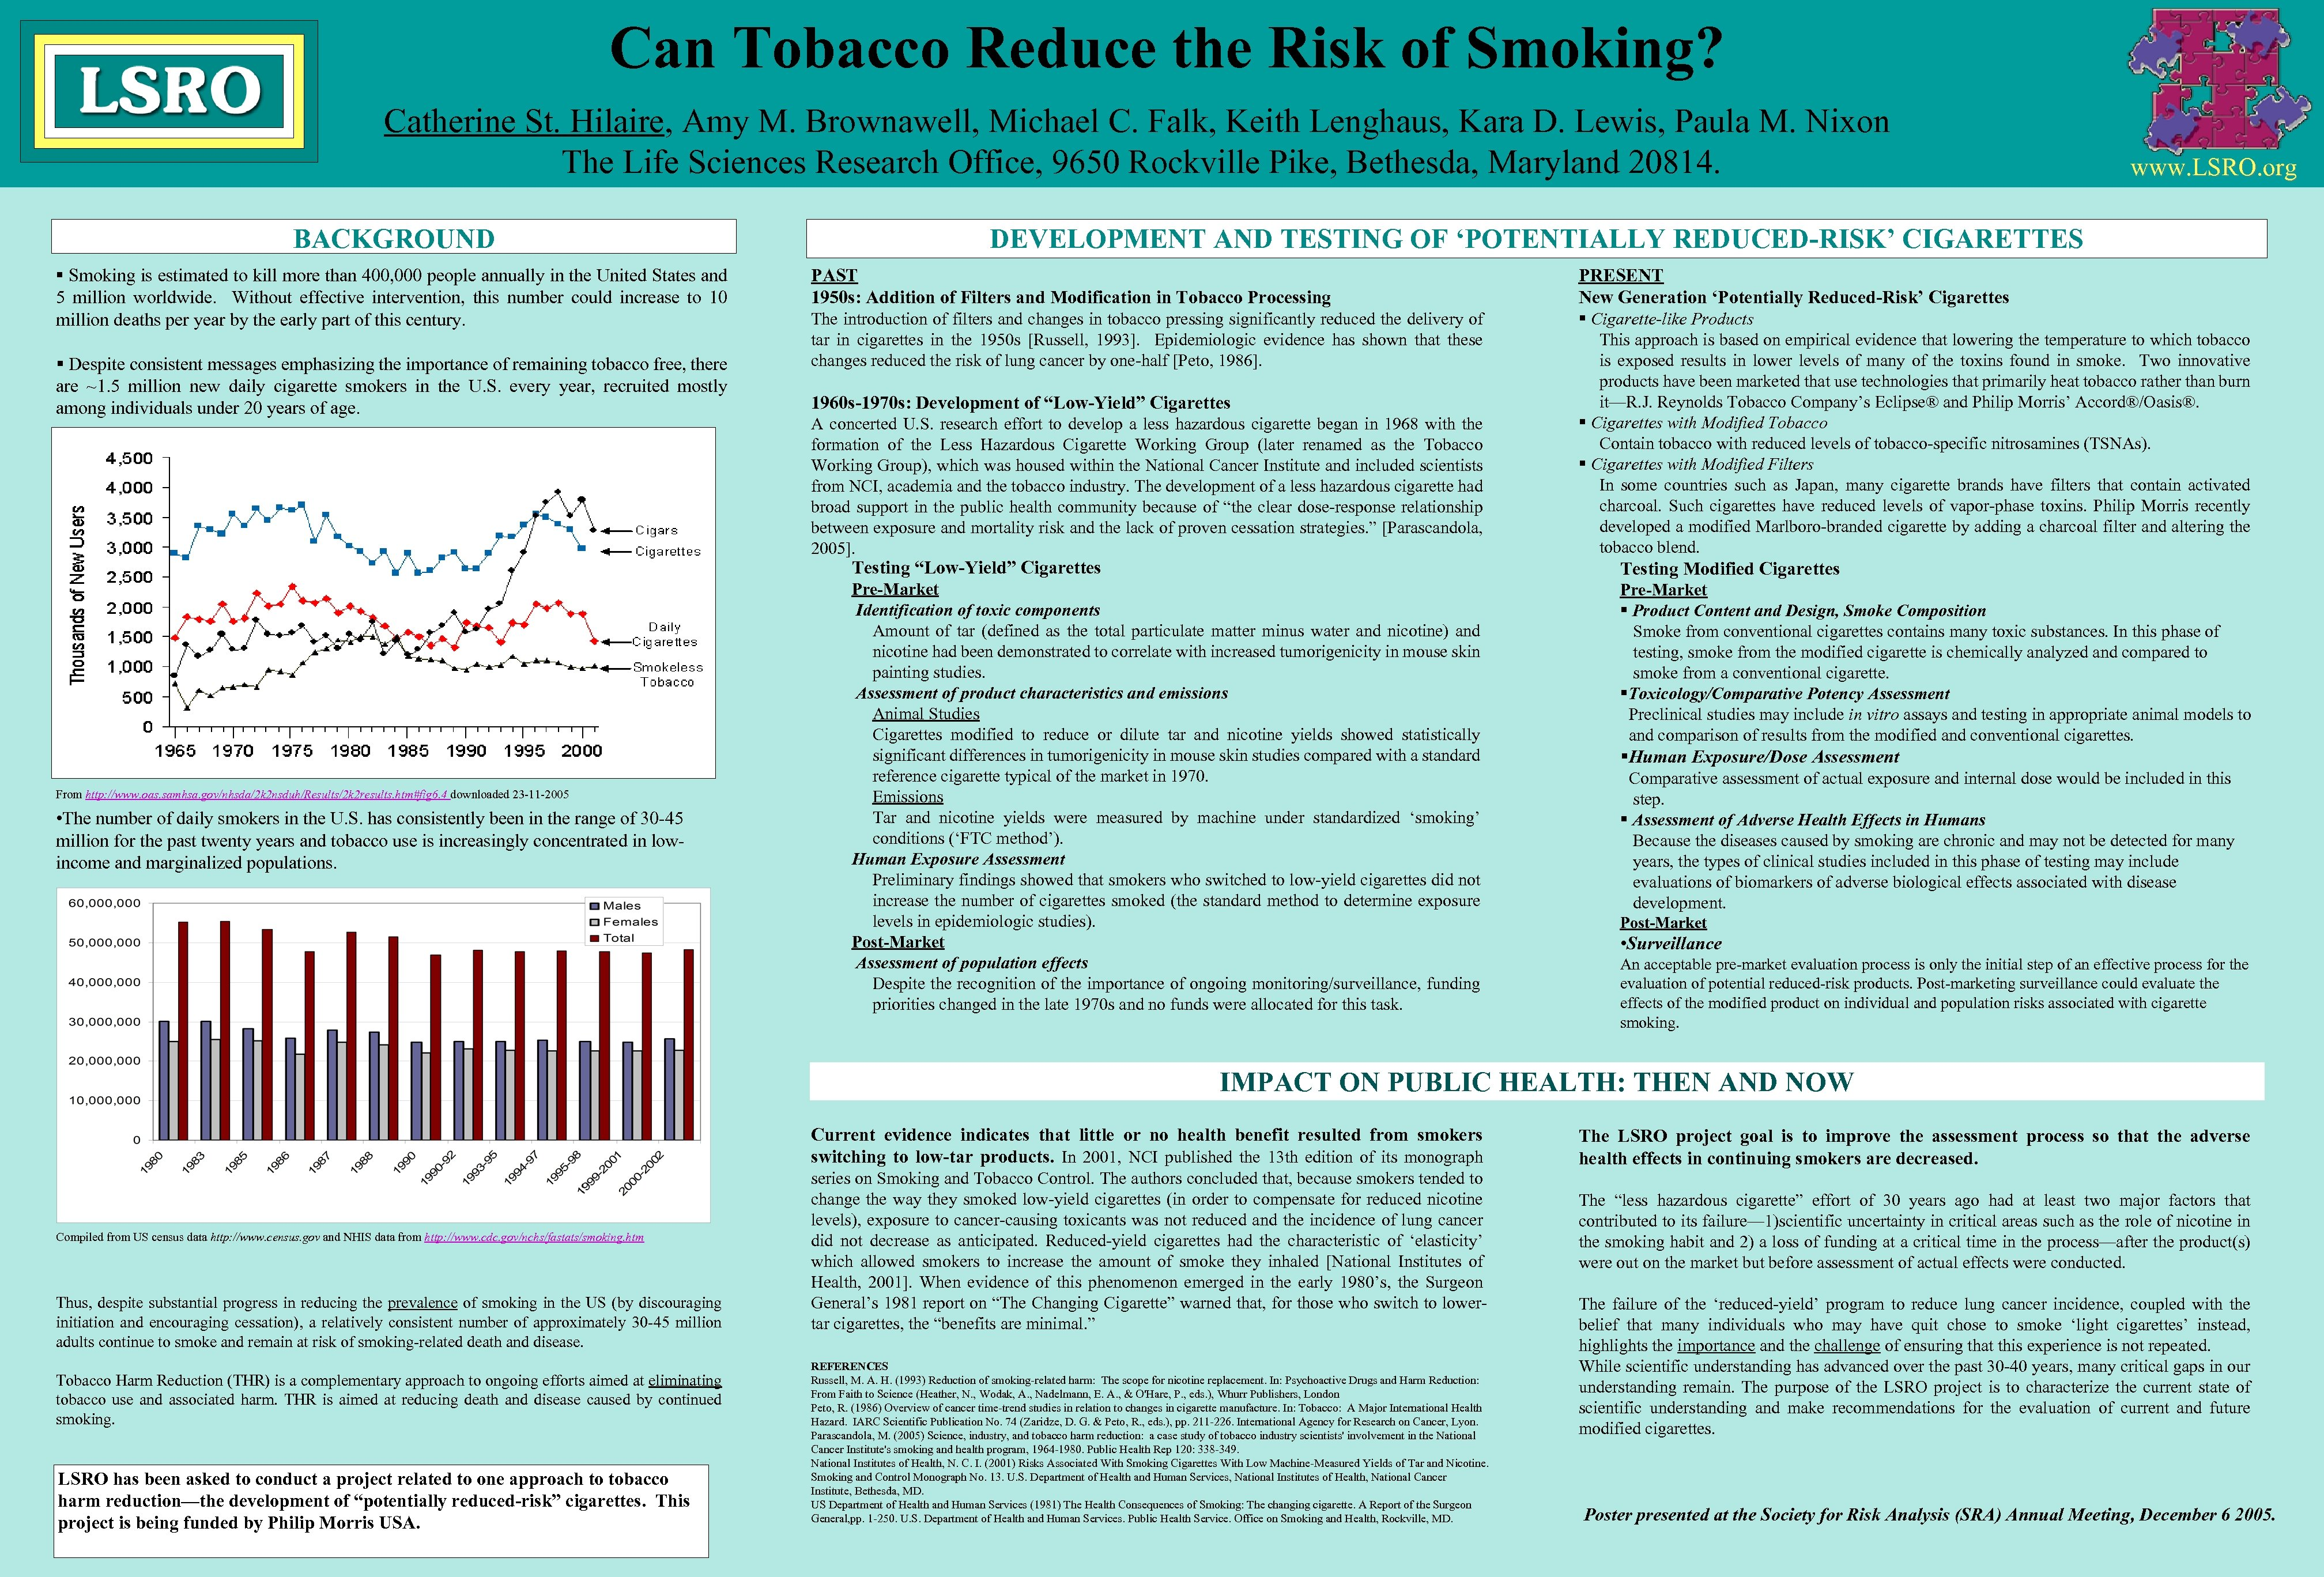 Can Tobacco Reduce the Risk of Smoking? Catherine St. Hilaire, Amy M. Brownawell, Michael